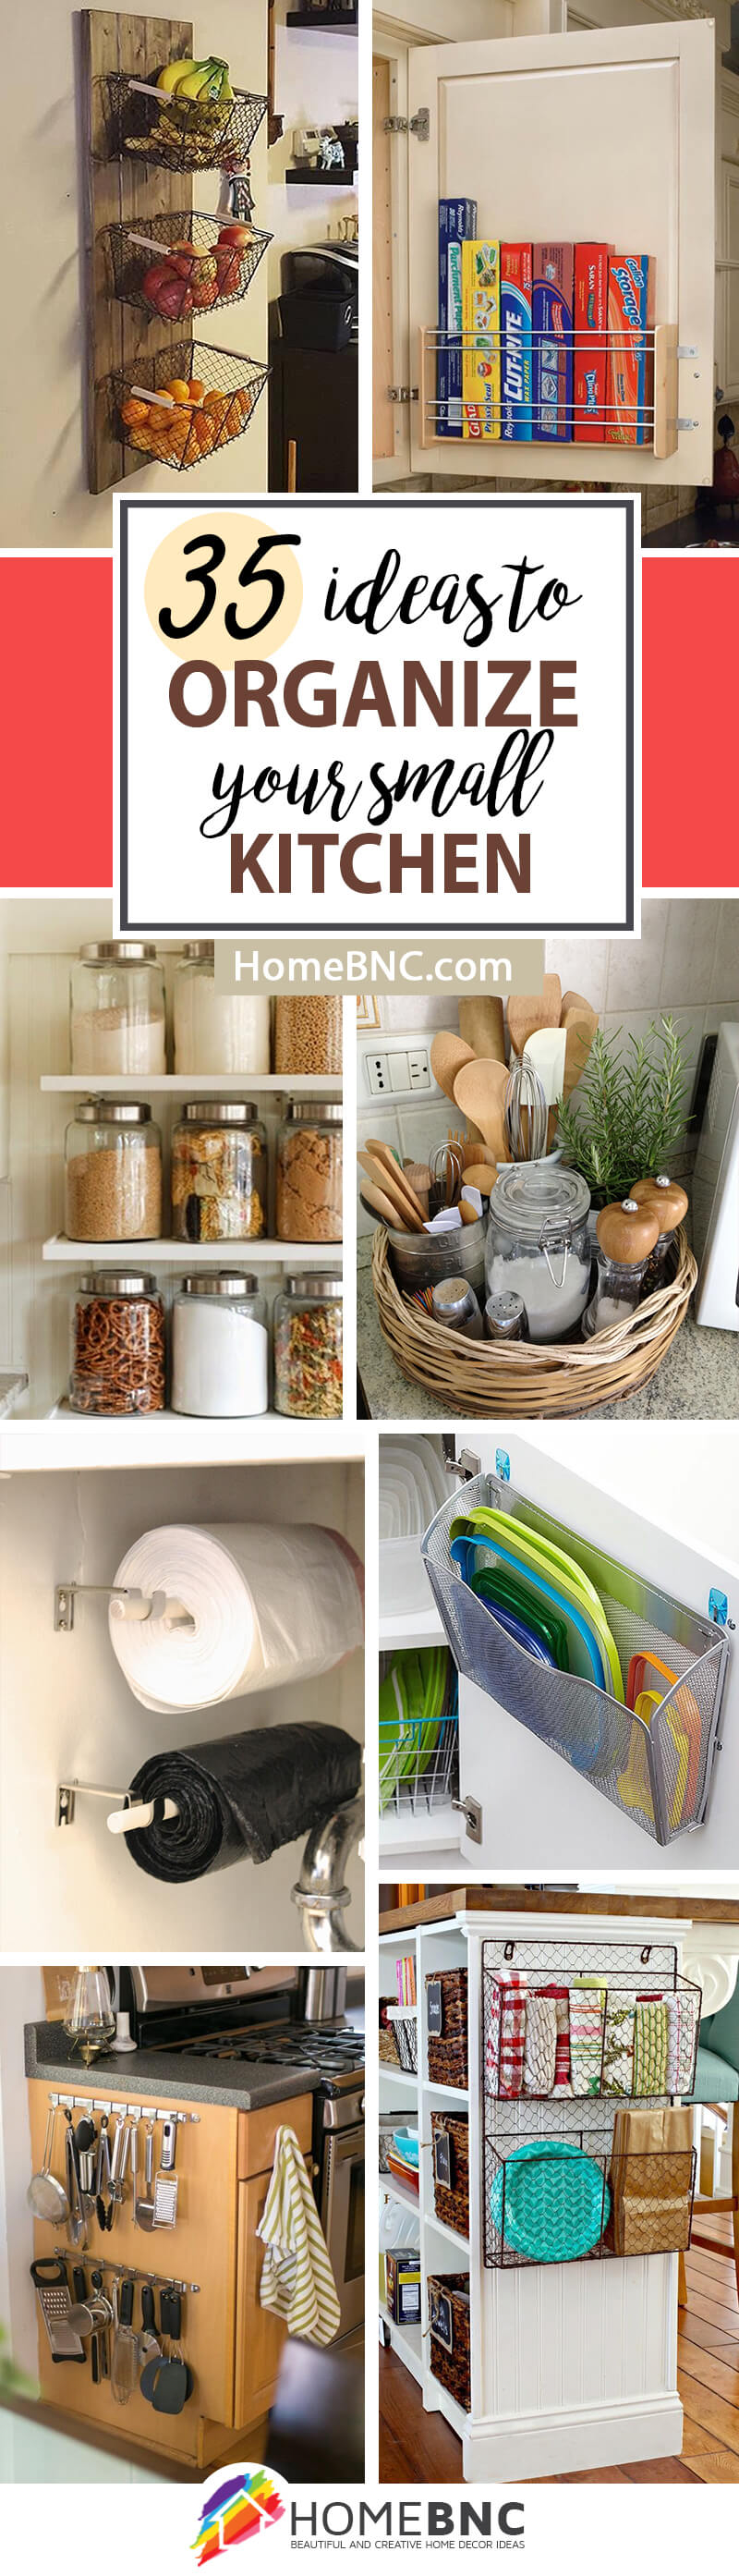 Small kitchen storage ideas 26 ingenious diy ideas for small spaces inspiring white cabinet - Kitchen organization ideas small spaces paint ...